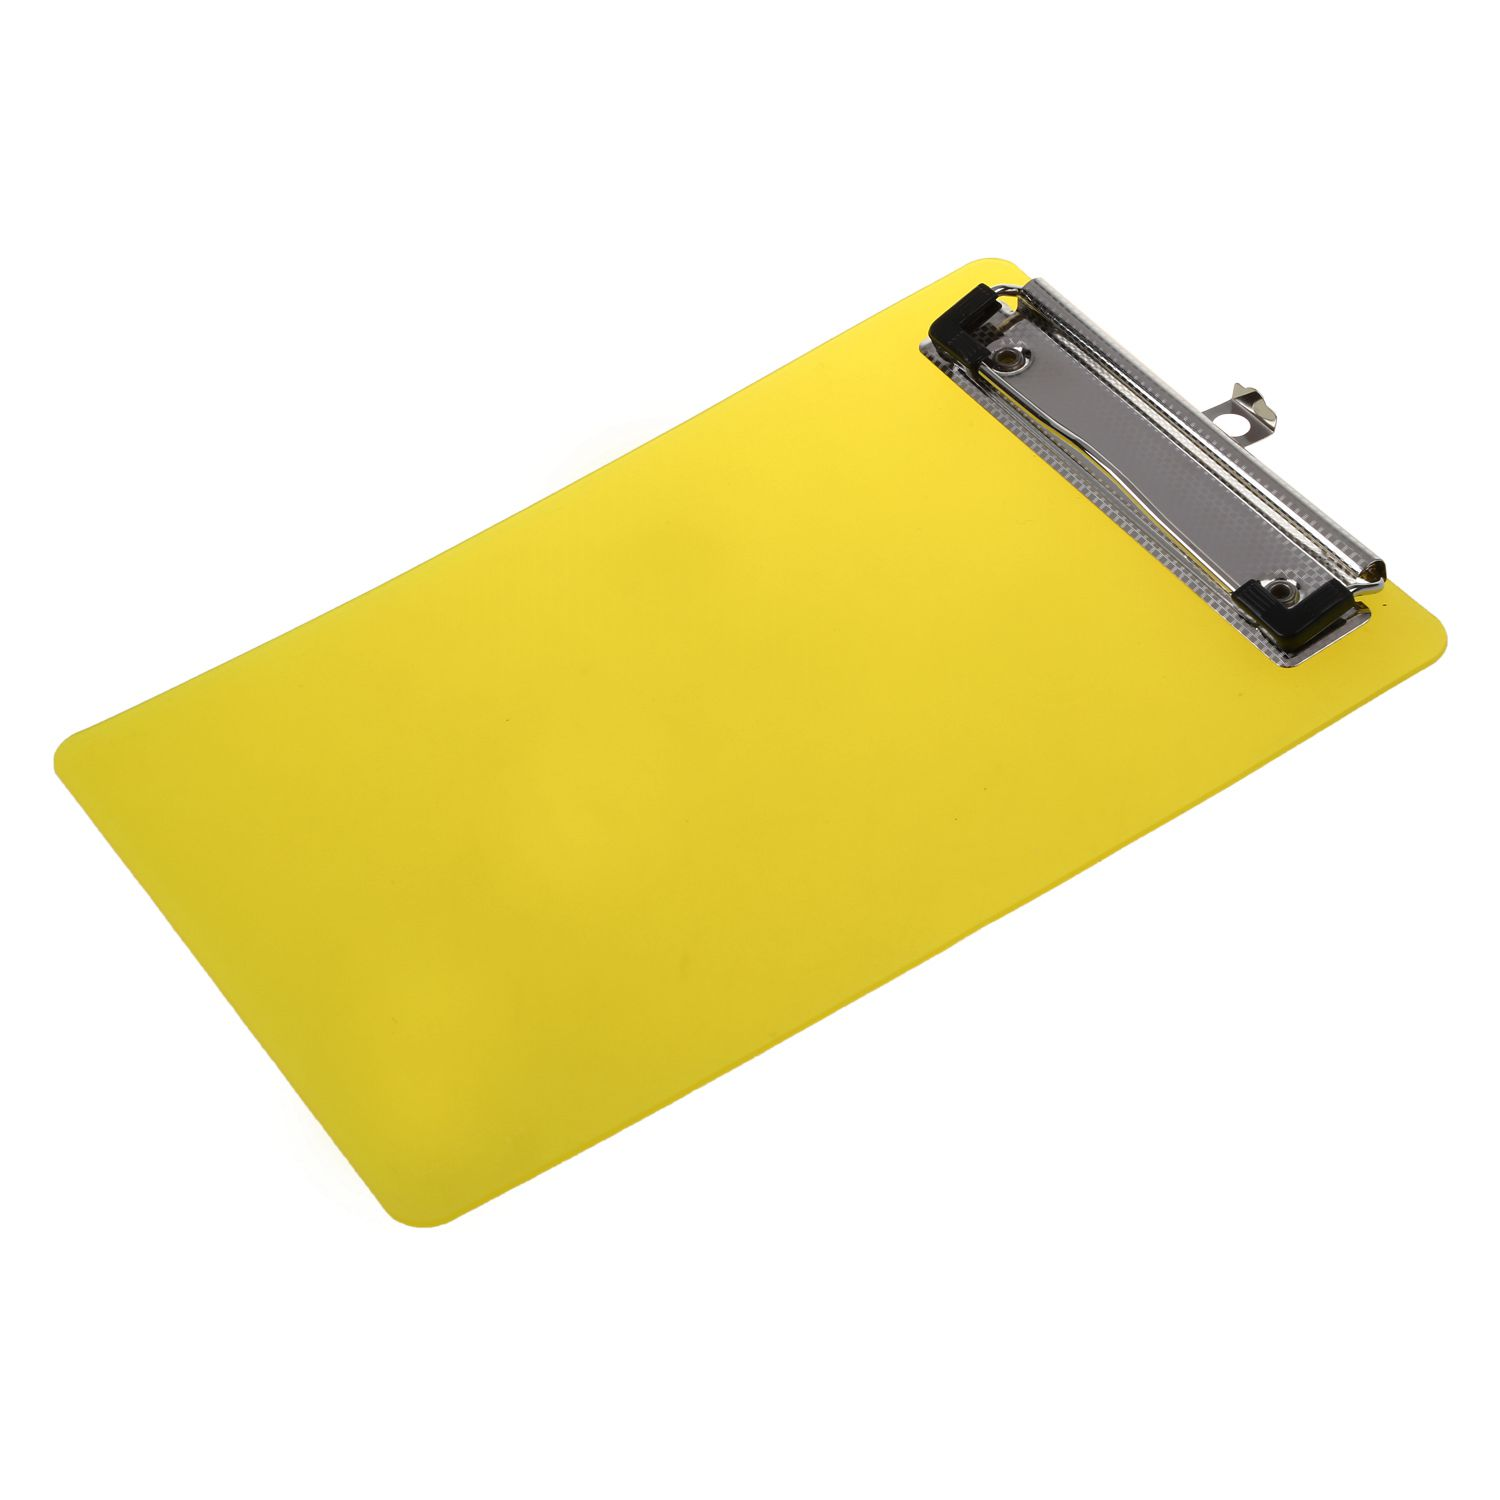 Plastic A6 Clipboard Folder With Lid Clipboard Orange